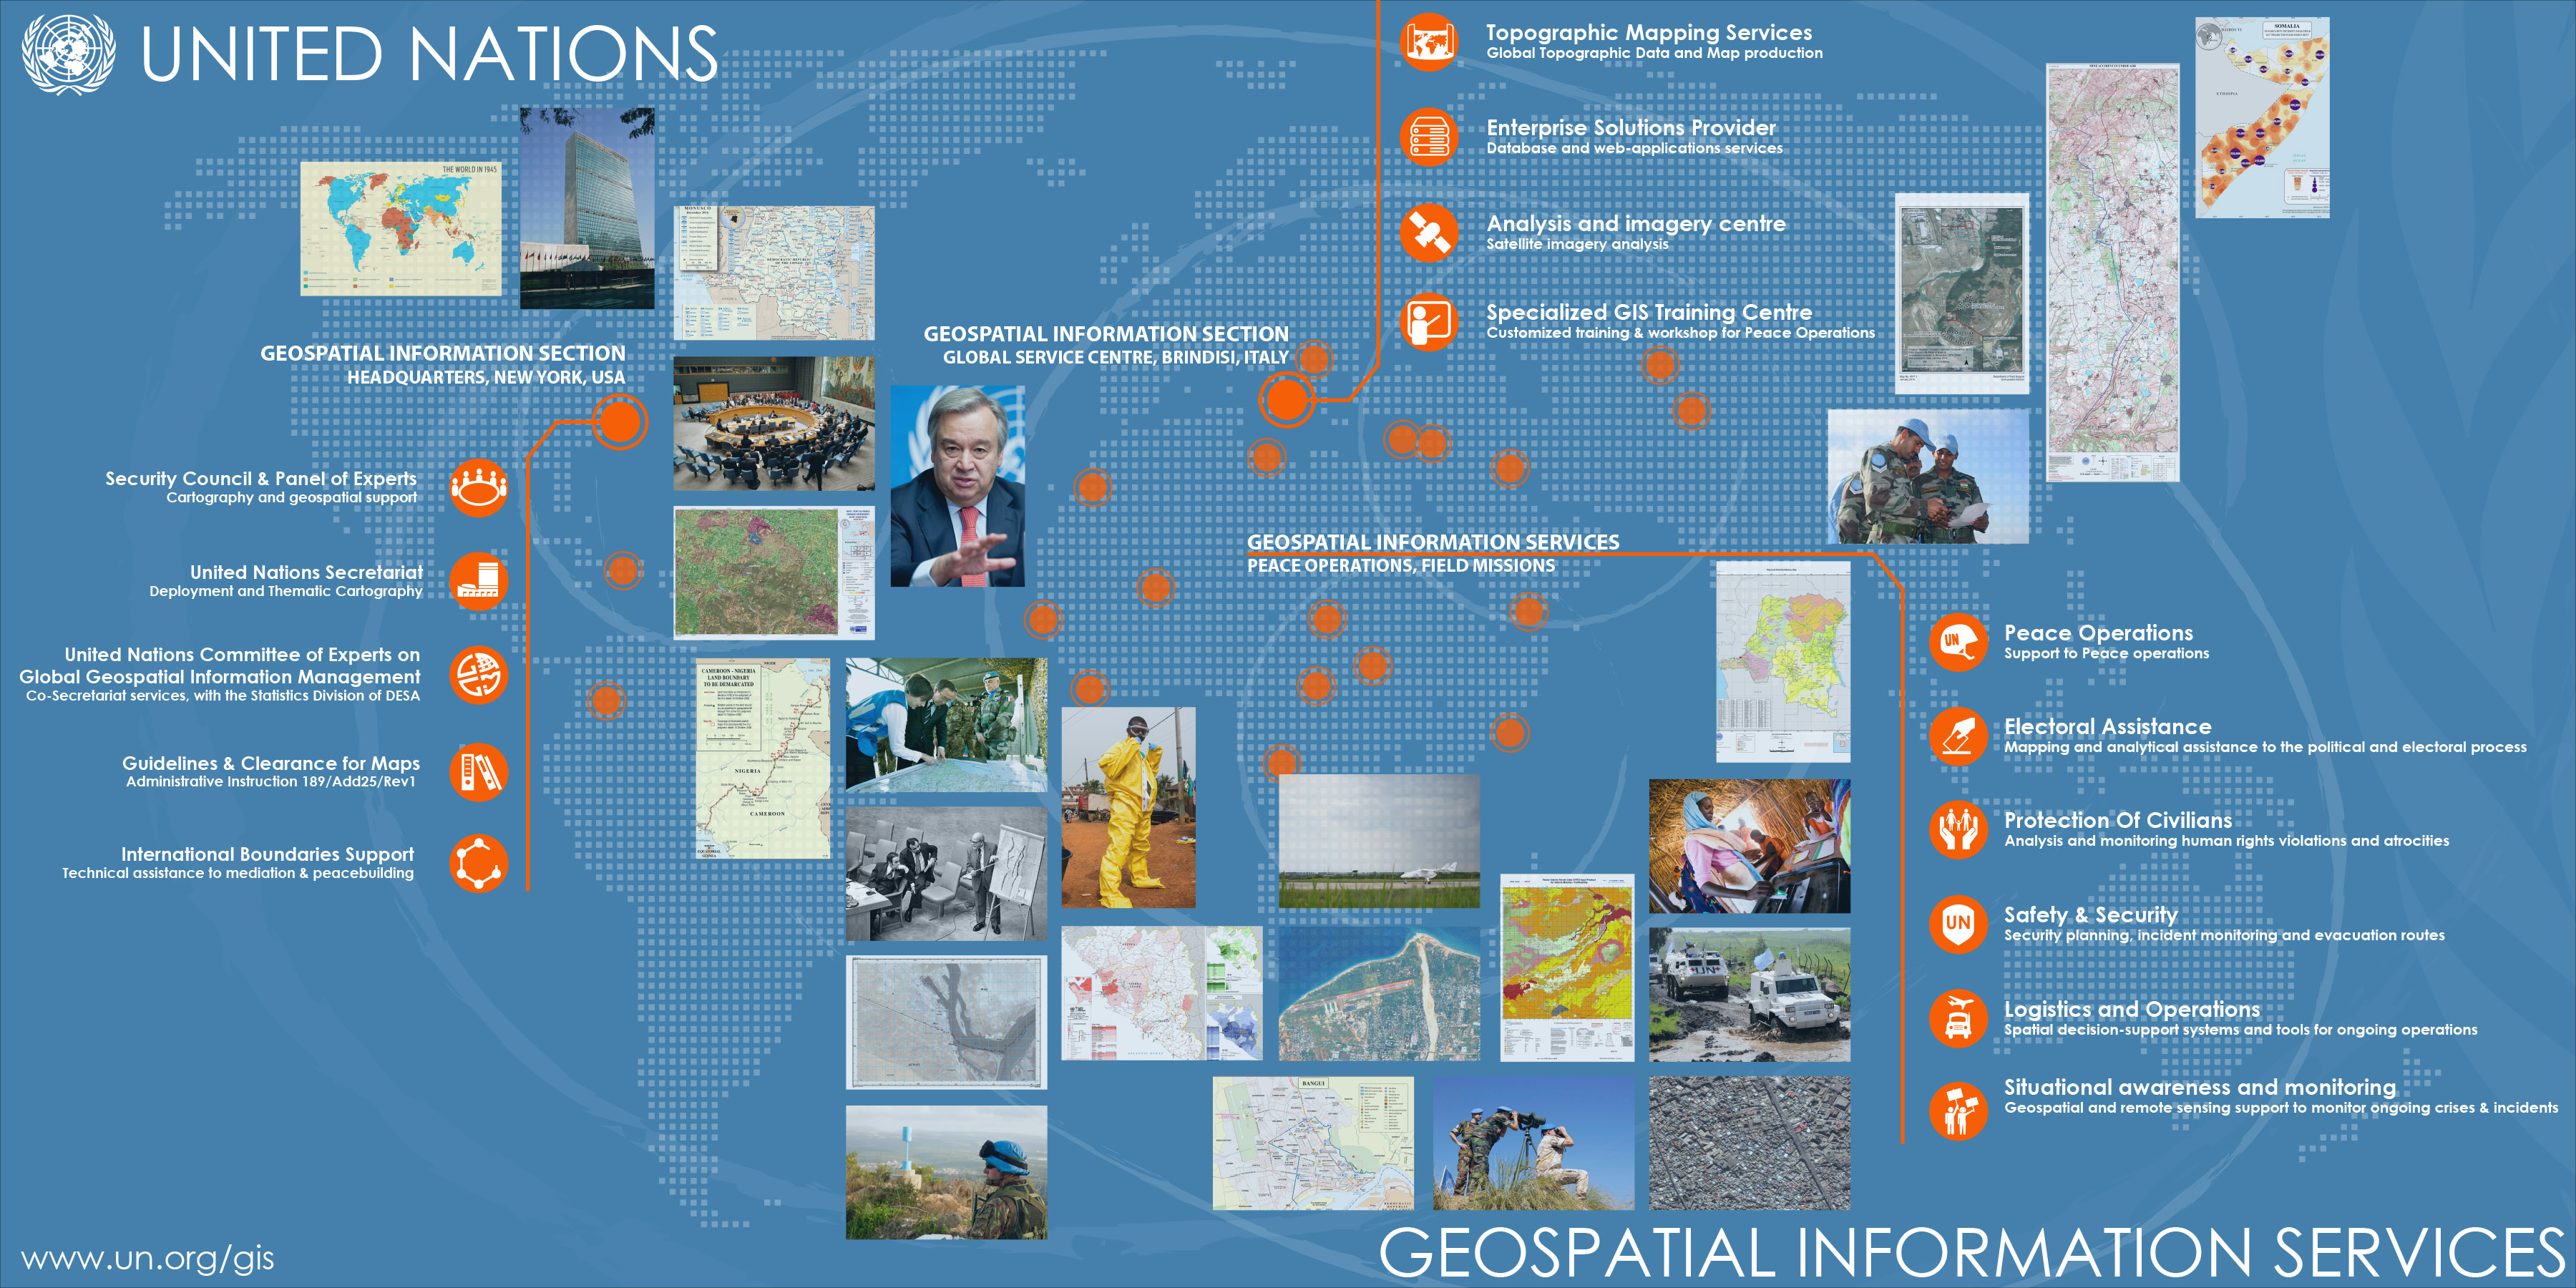 What our students did during their summer cartography m for anyone interested in doing an internship or working at the united nations be it in the headquarters in new york city with the geospatial information gumiabroncs Gallery